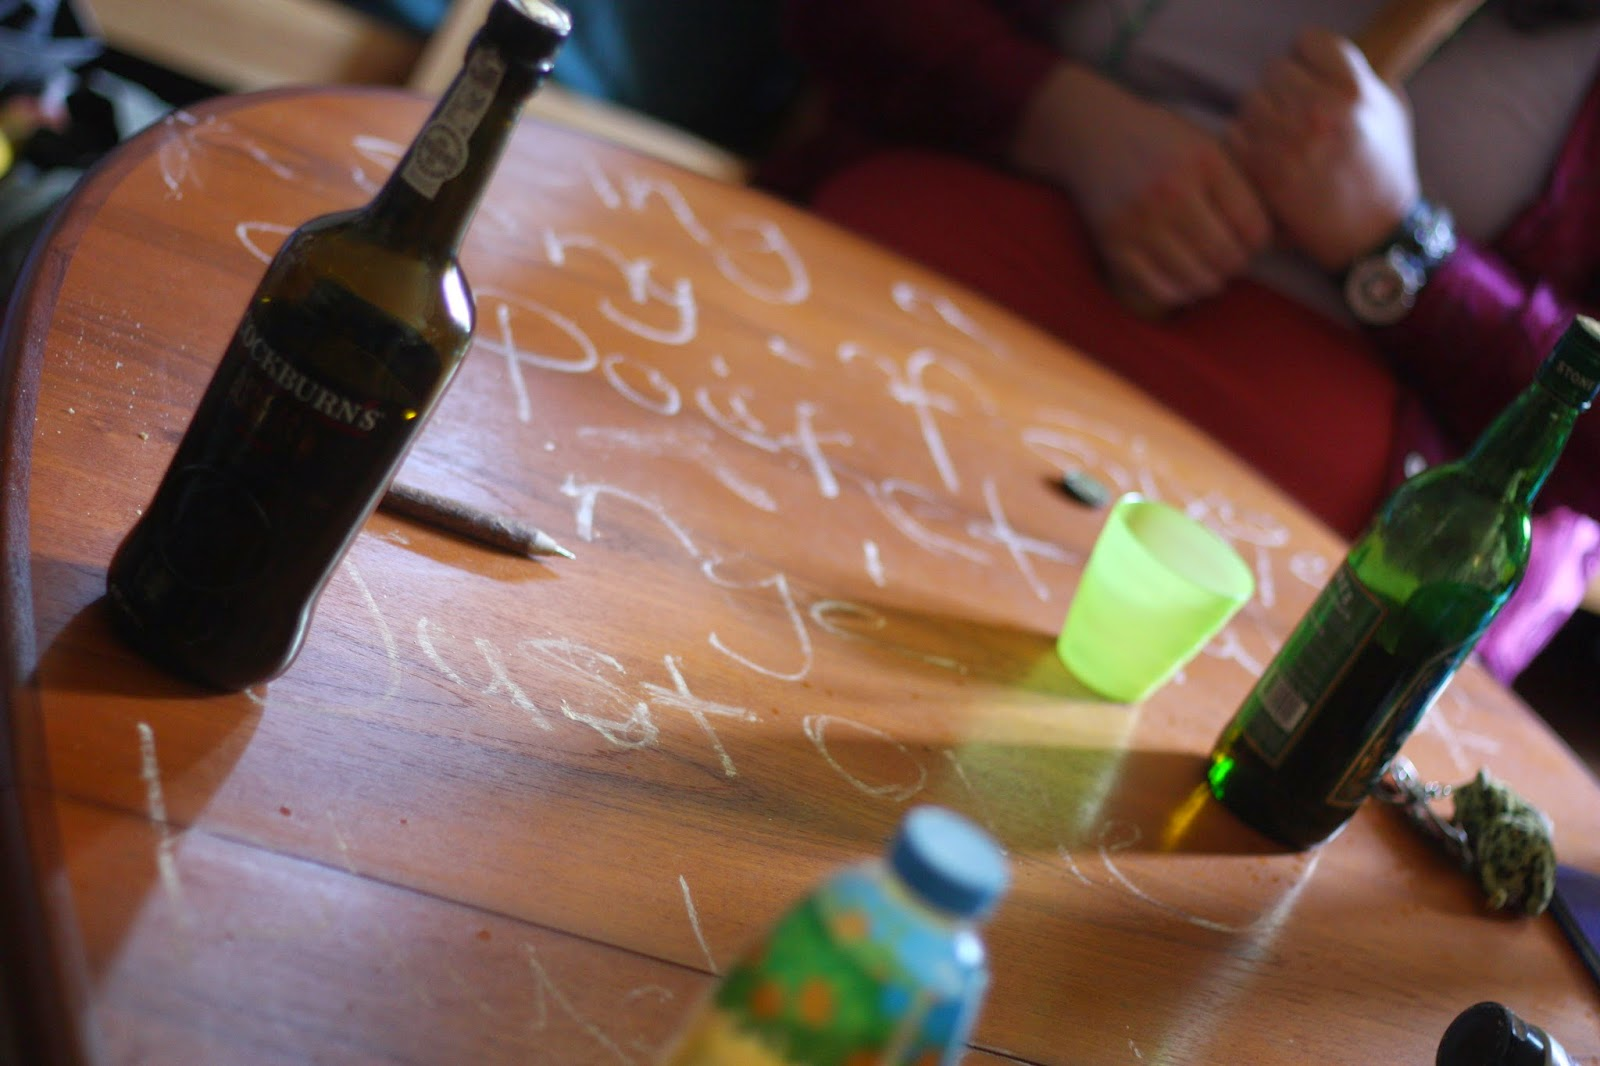 A table with wine bottles, cups and writing on it.